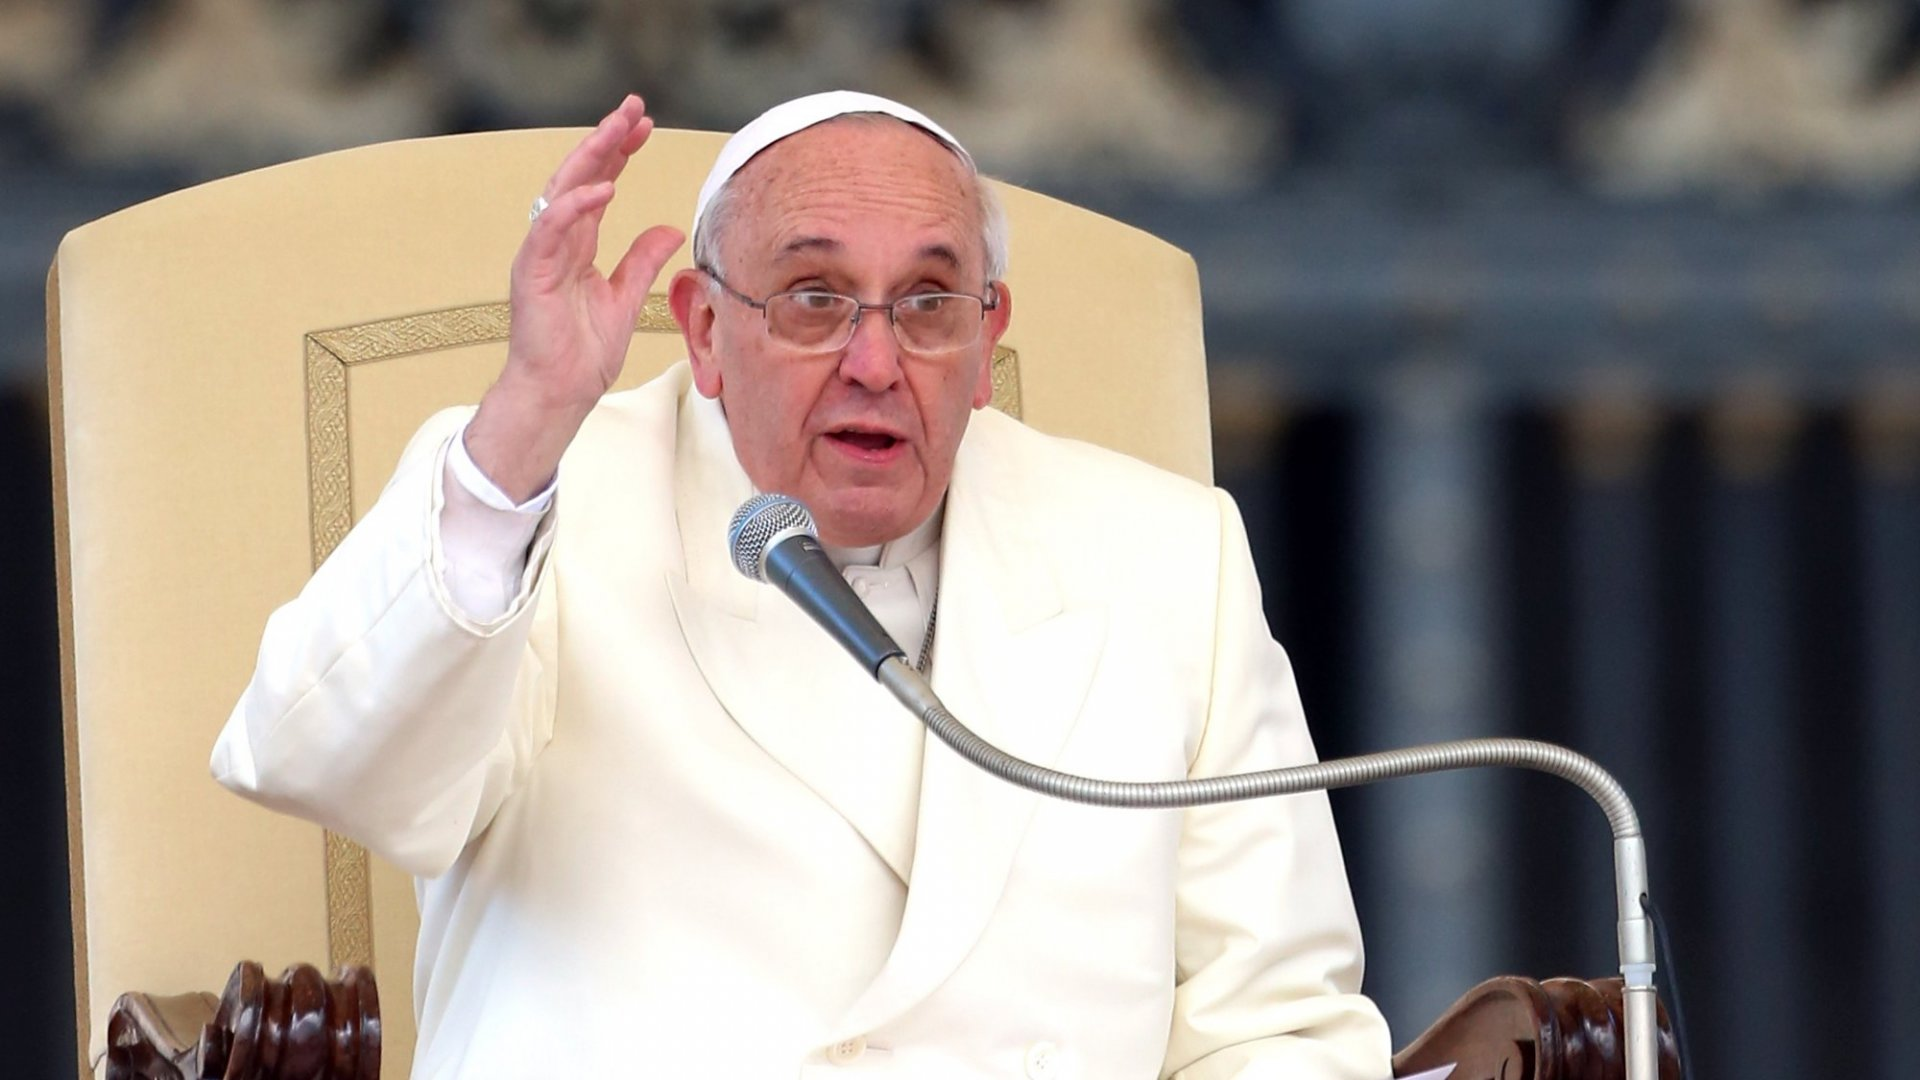 In His Surprise TED Talk, Pope Francis Relied on This Proven Writing and Speaking Formula